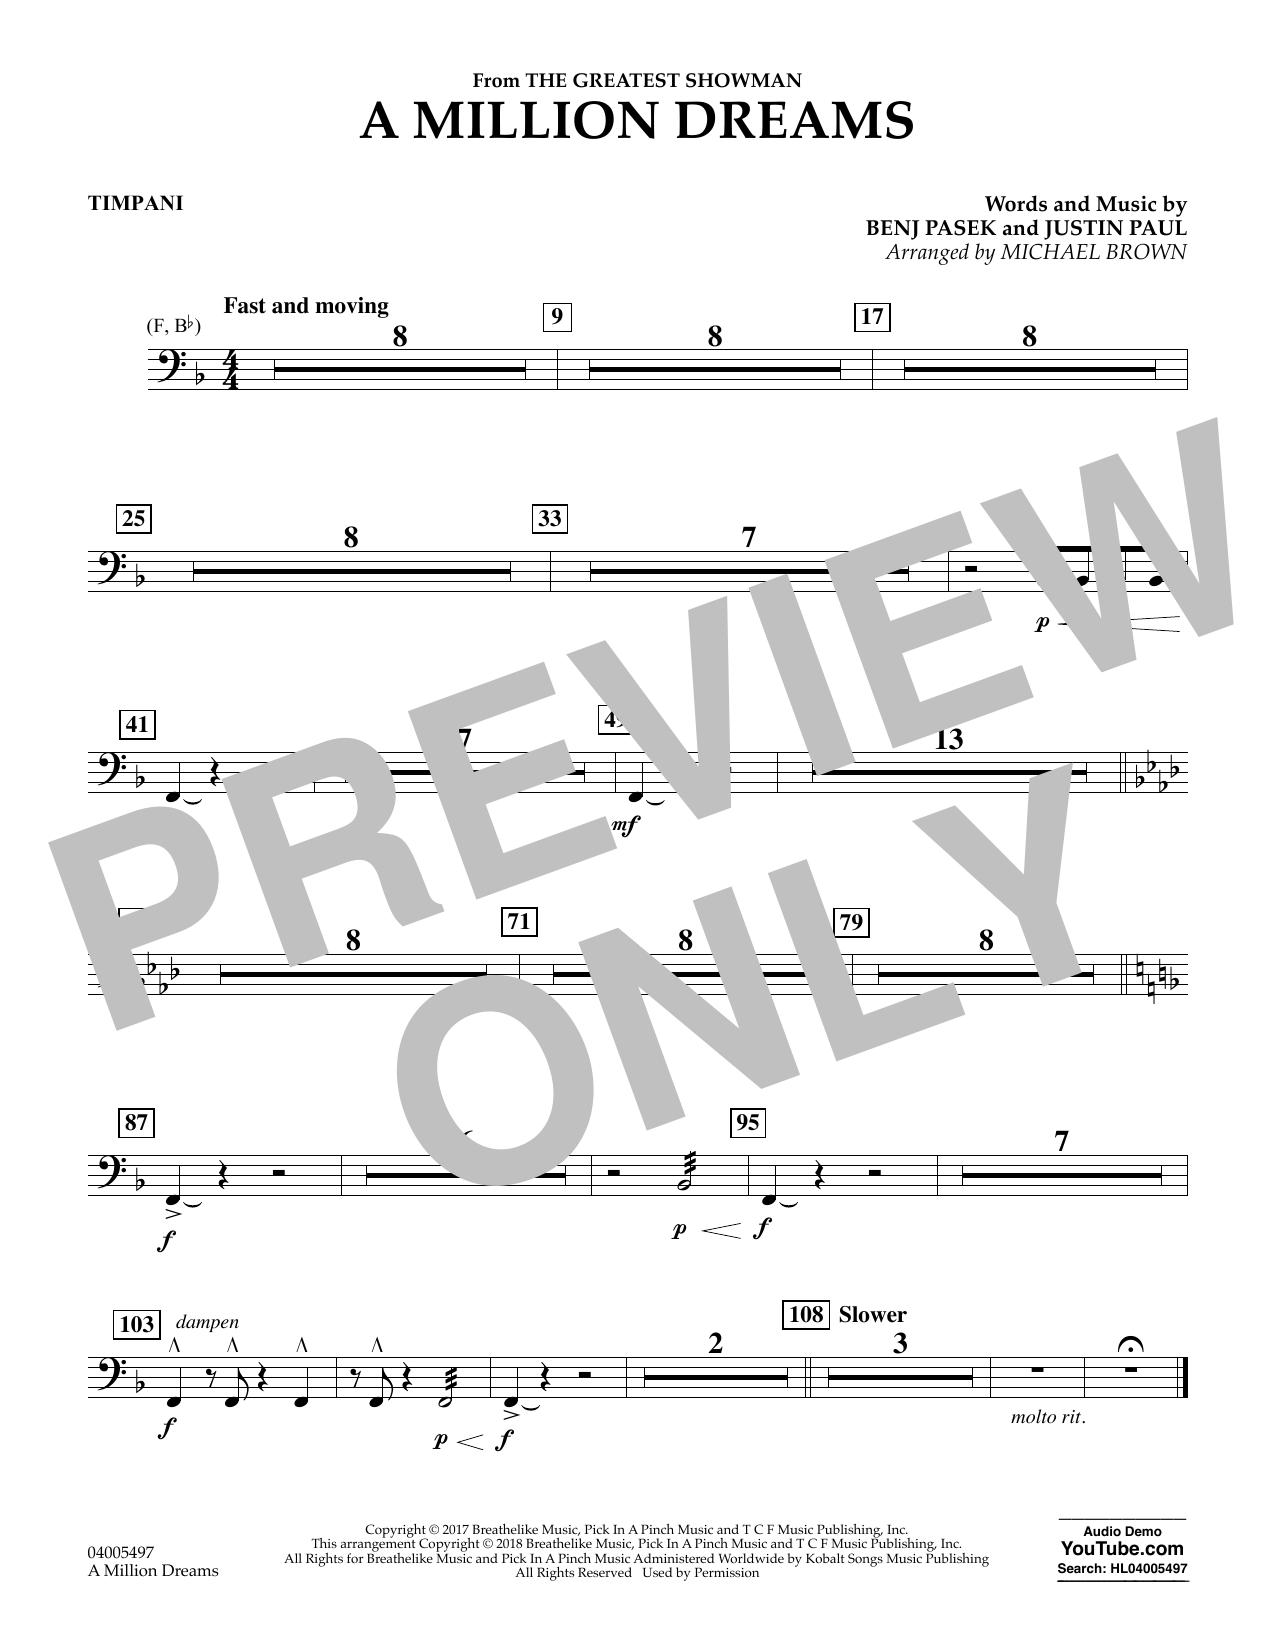 Pasek & Paul A Million Dreams (from The Greatest Showman) (arr. Michael Brown) - Timpani sheet music notes and chords. Download Printable PDF.